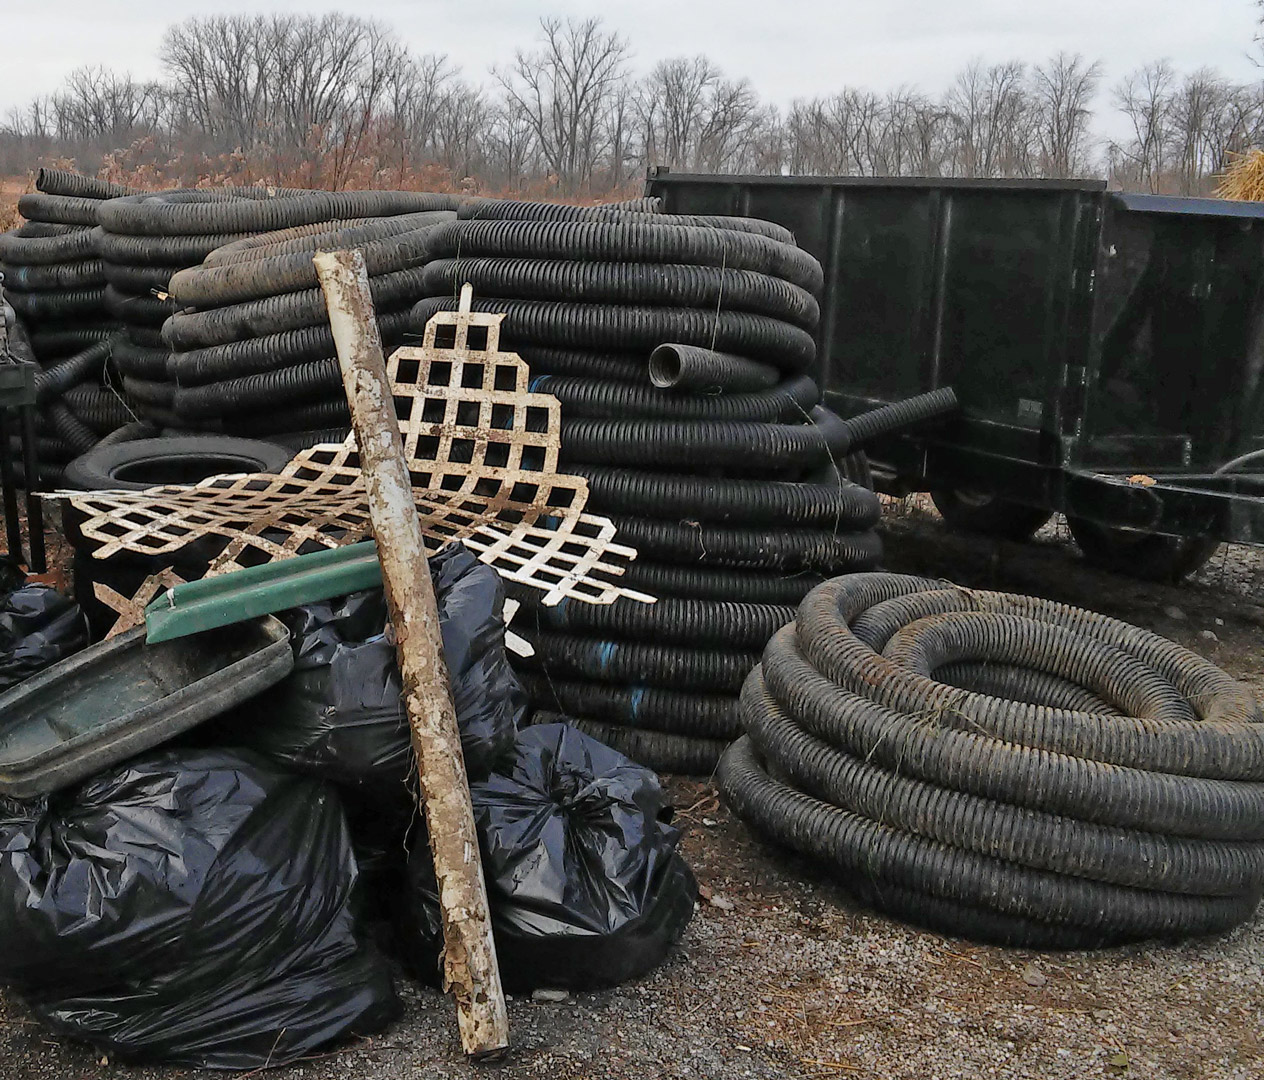 Irrigation pipes and other construction materials were swept into parks by flooding